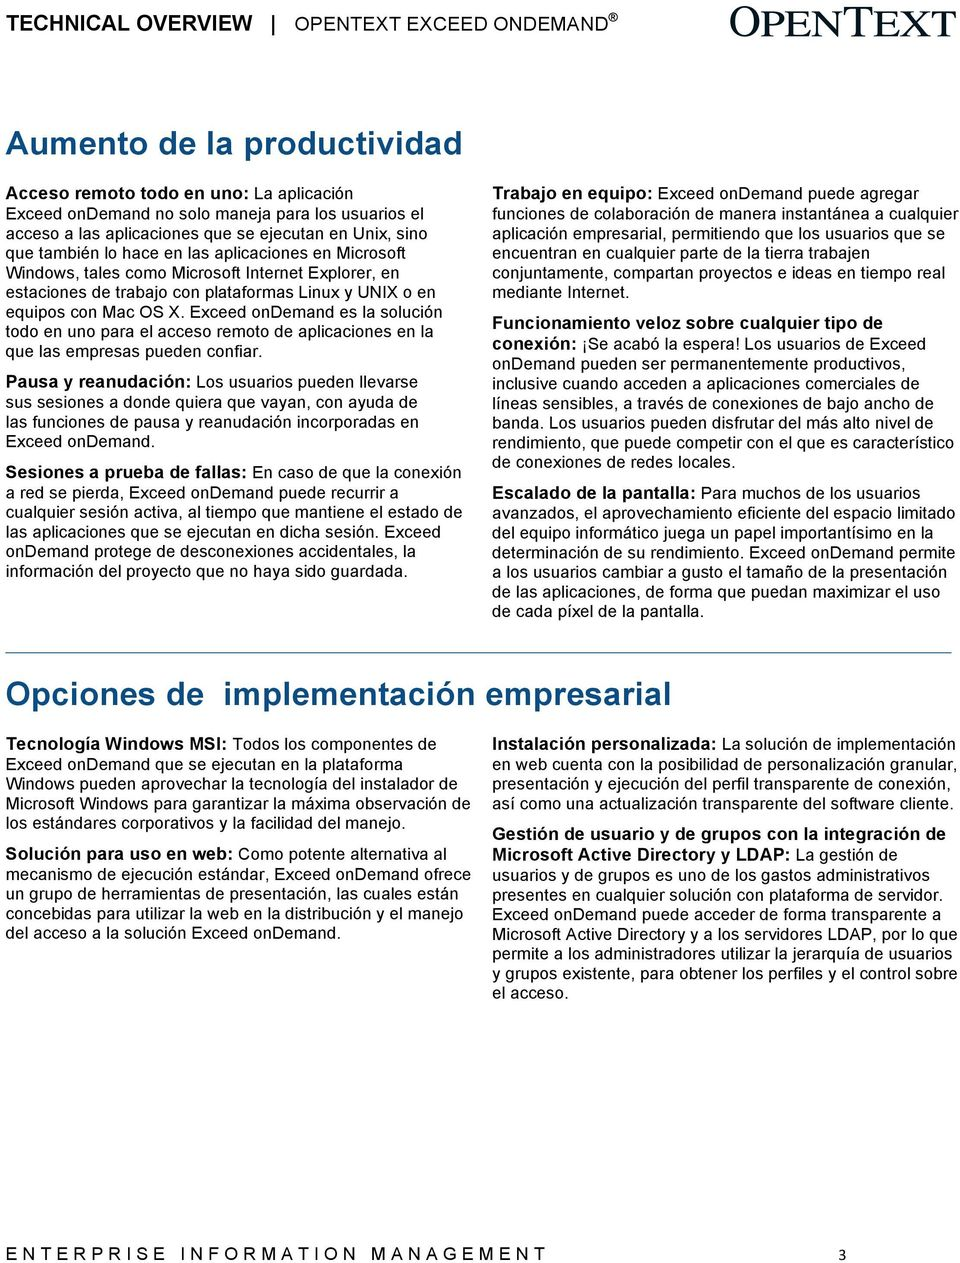 OpenText Exceed ondemand - PDF